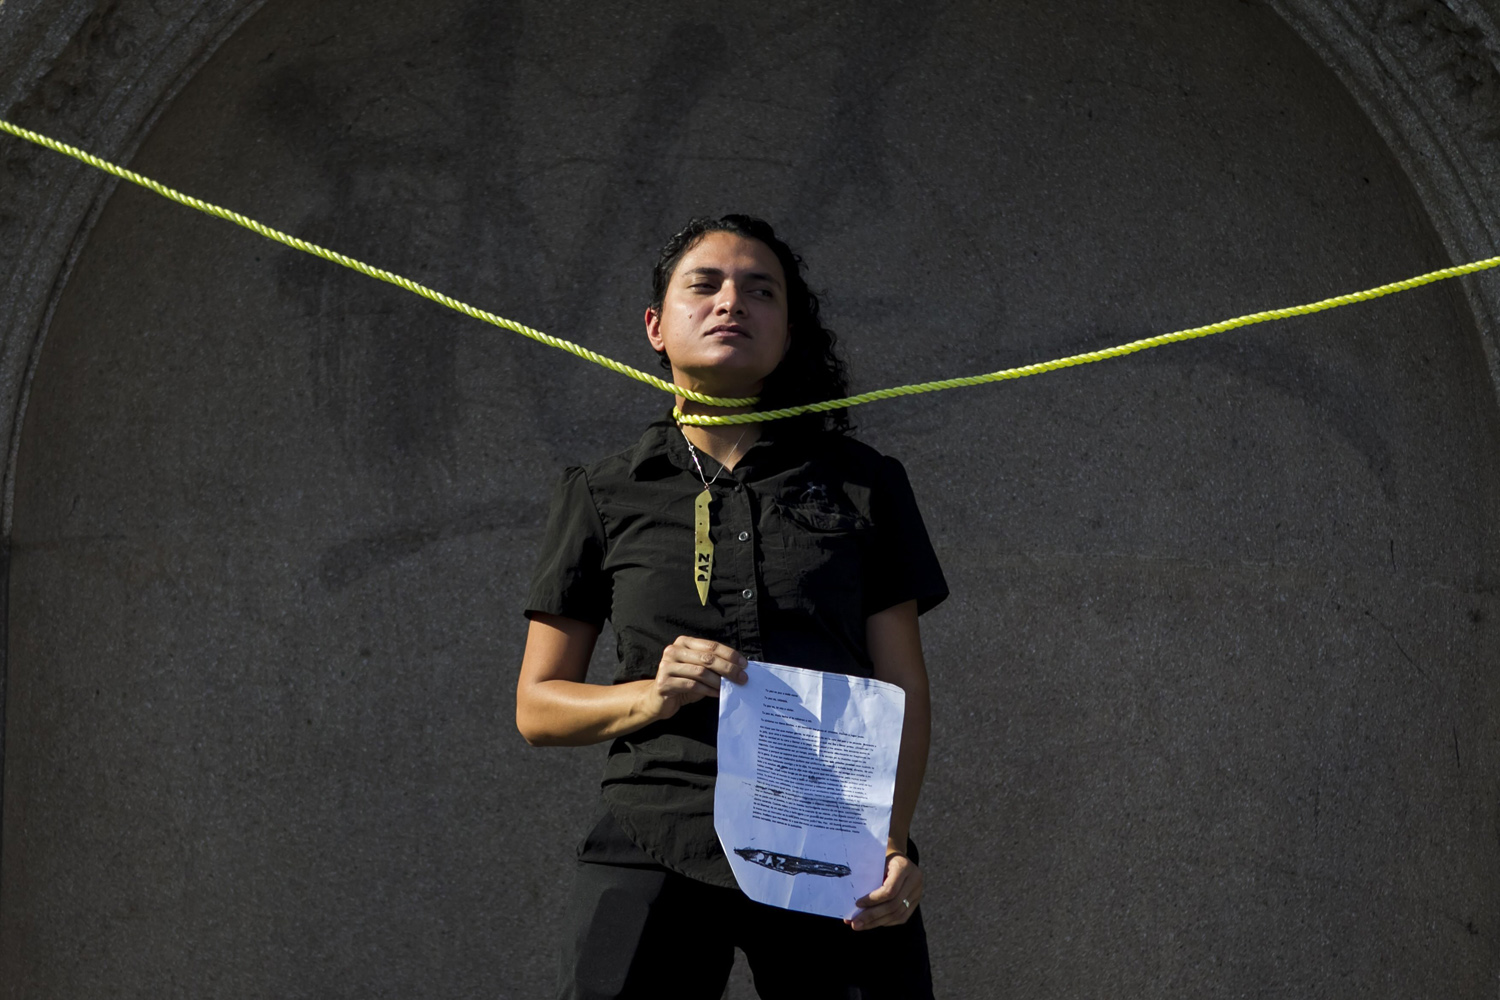 Mar. 18 , 2014. A woman presents a performance about Venezuela's crisis during a protest at Altamira Square in Caracas, Venezuela, Since mid February, 27 people including opposition activists, pro-government supporters and at least one police officer have died across the country in anti-government protests.